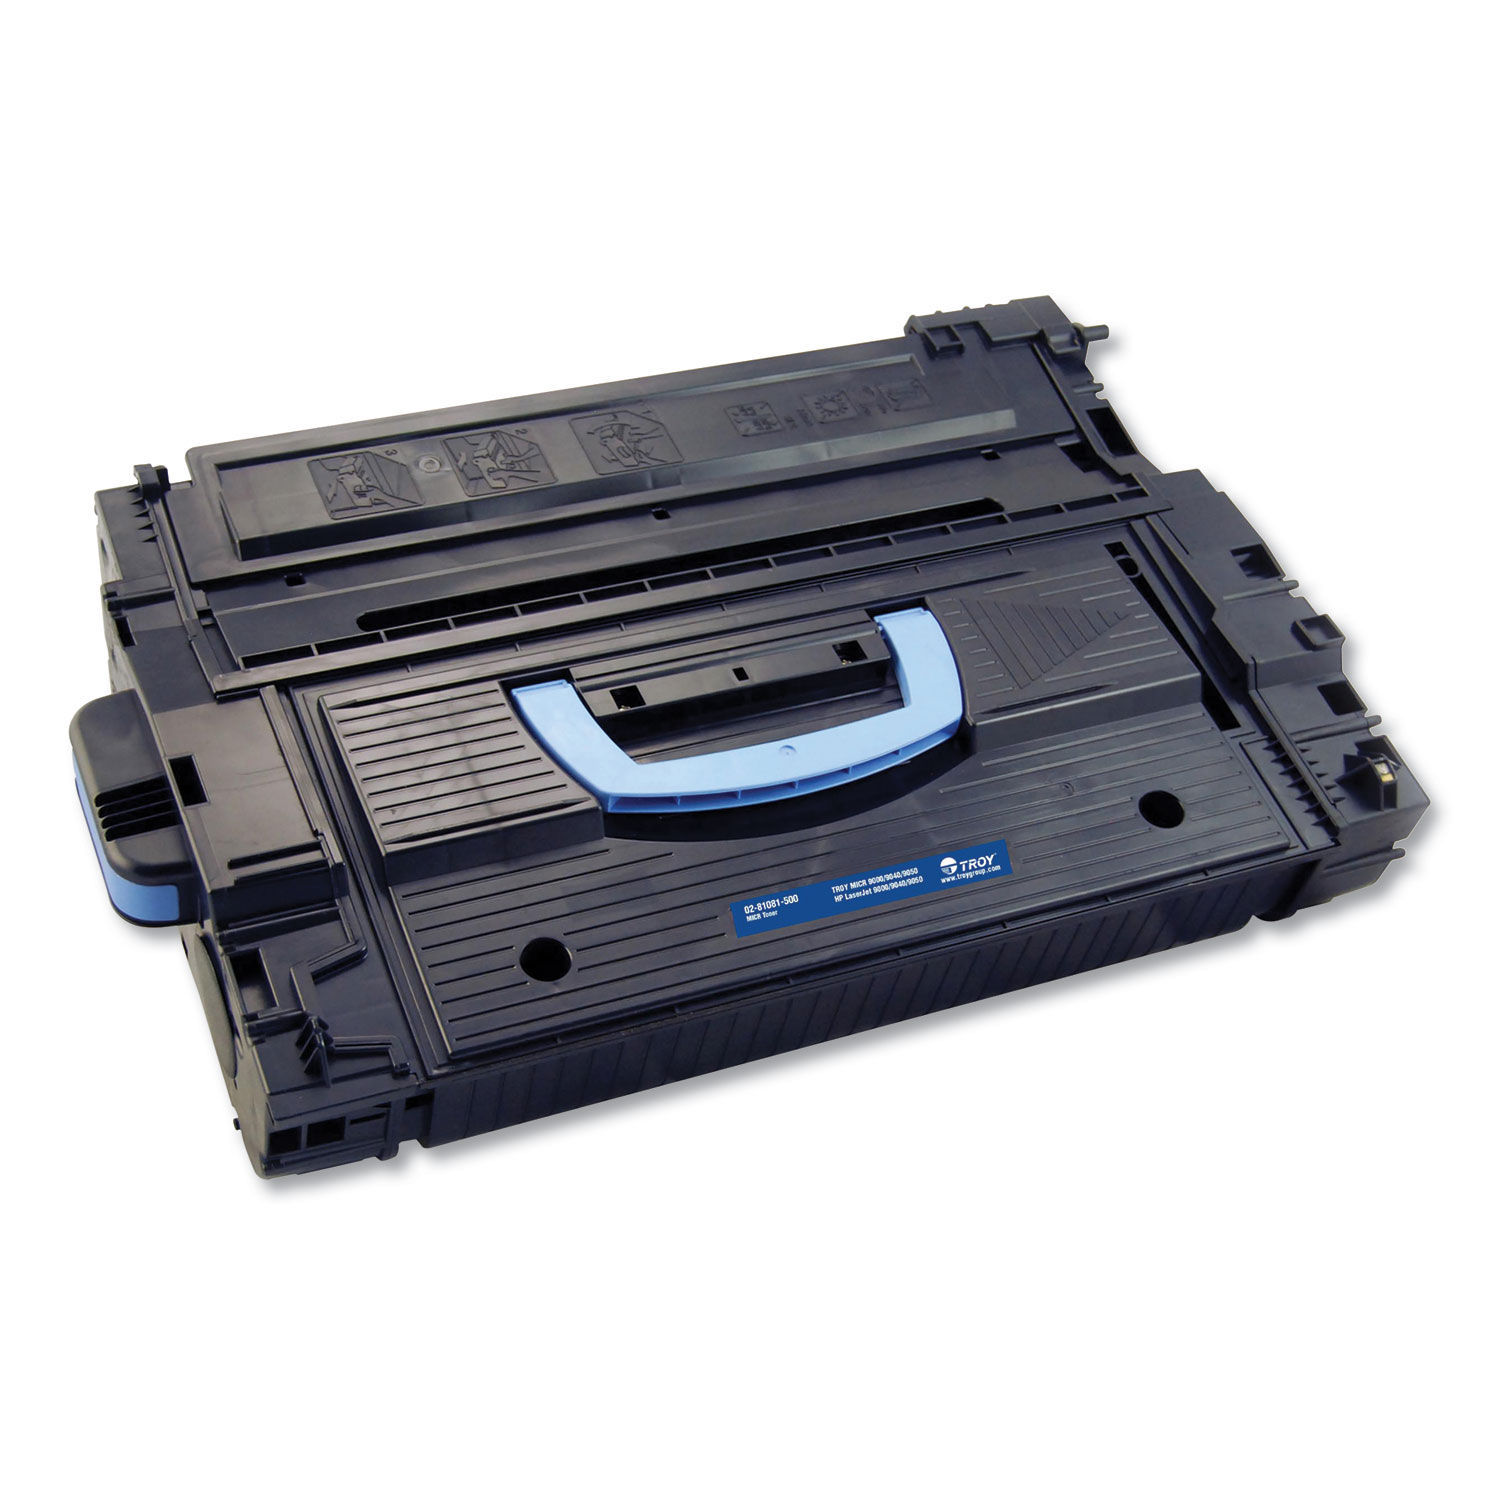 Equivalent to HP C8543X Troy 02-81081-001 30000 Page Yield SuppliesMAX Compatible Replacement for 882113 MICR Toner Cartridge